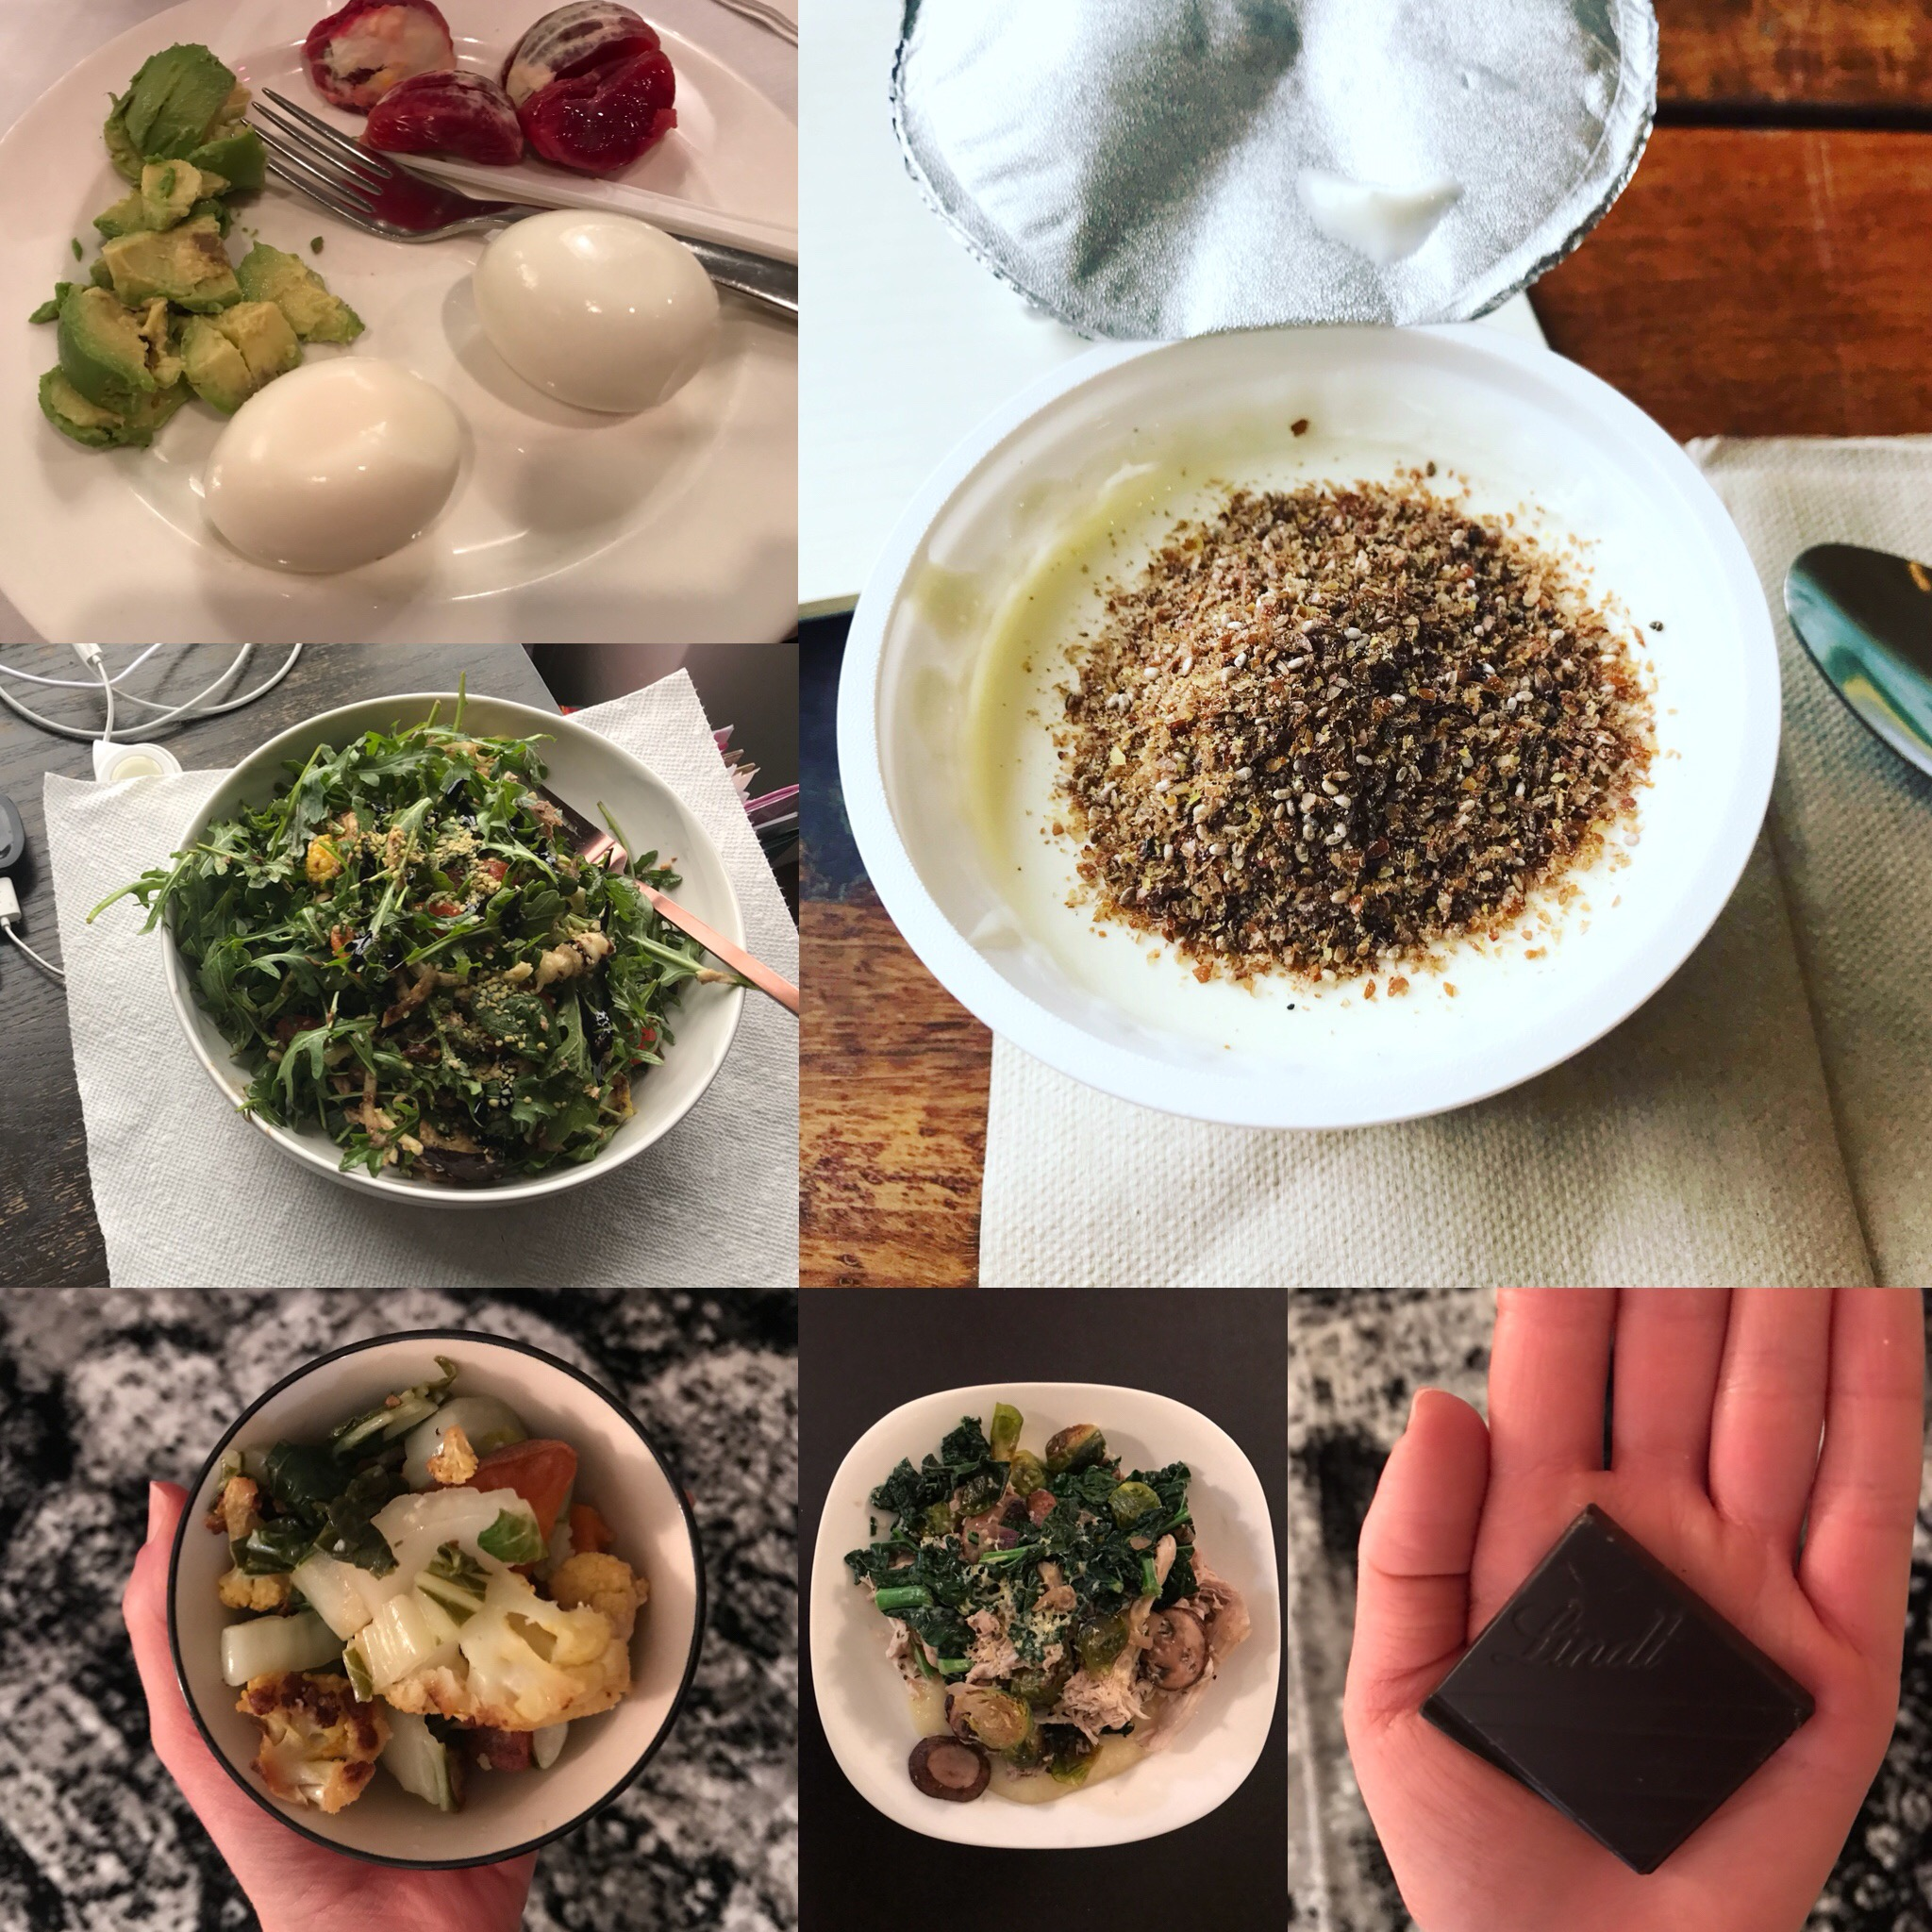 What I Ate Wednesday #355: An Actual Wednesday